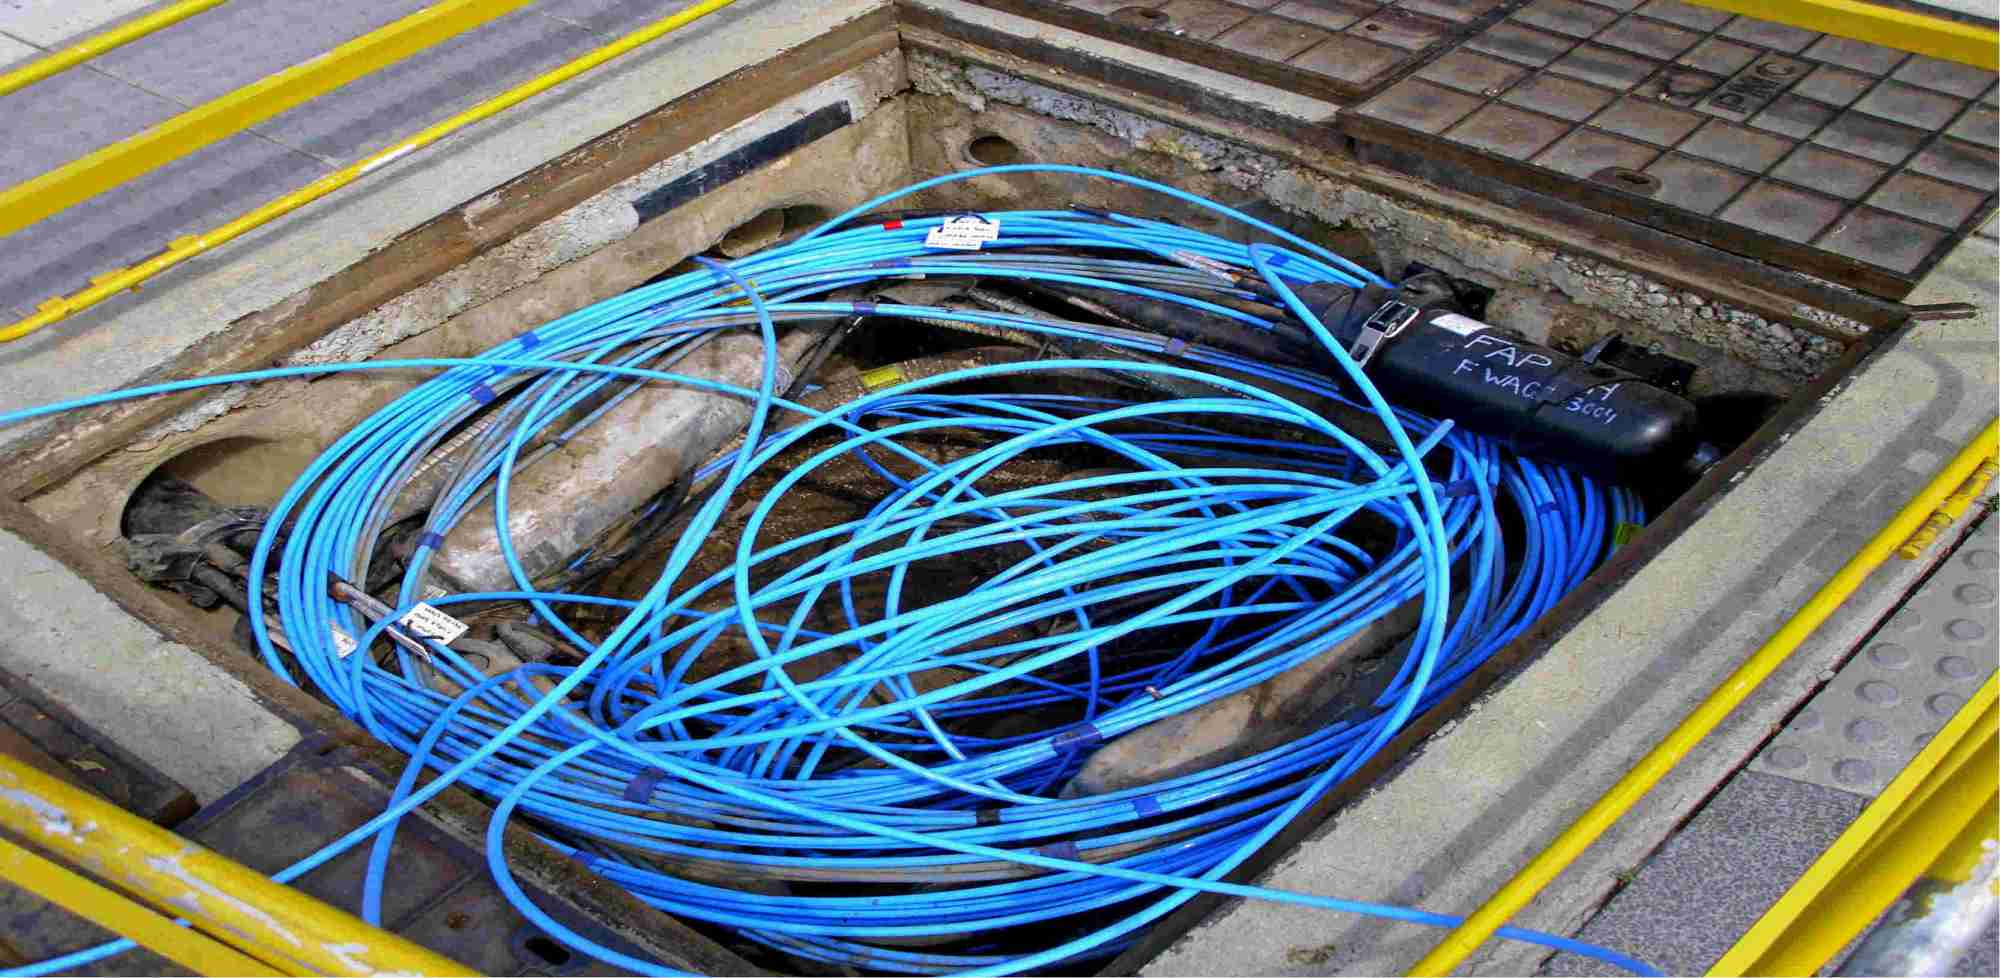 hight resolution of fibre cables